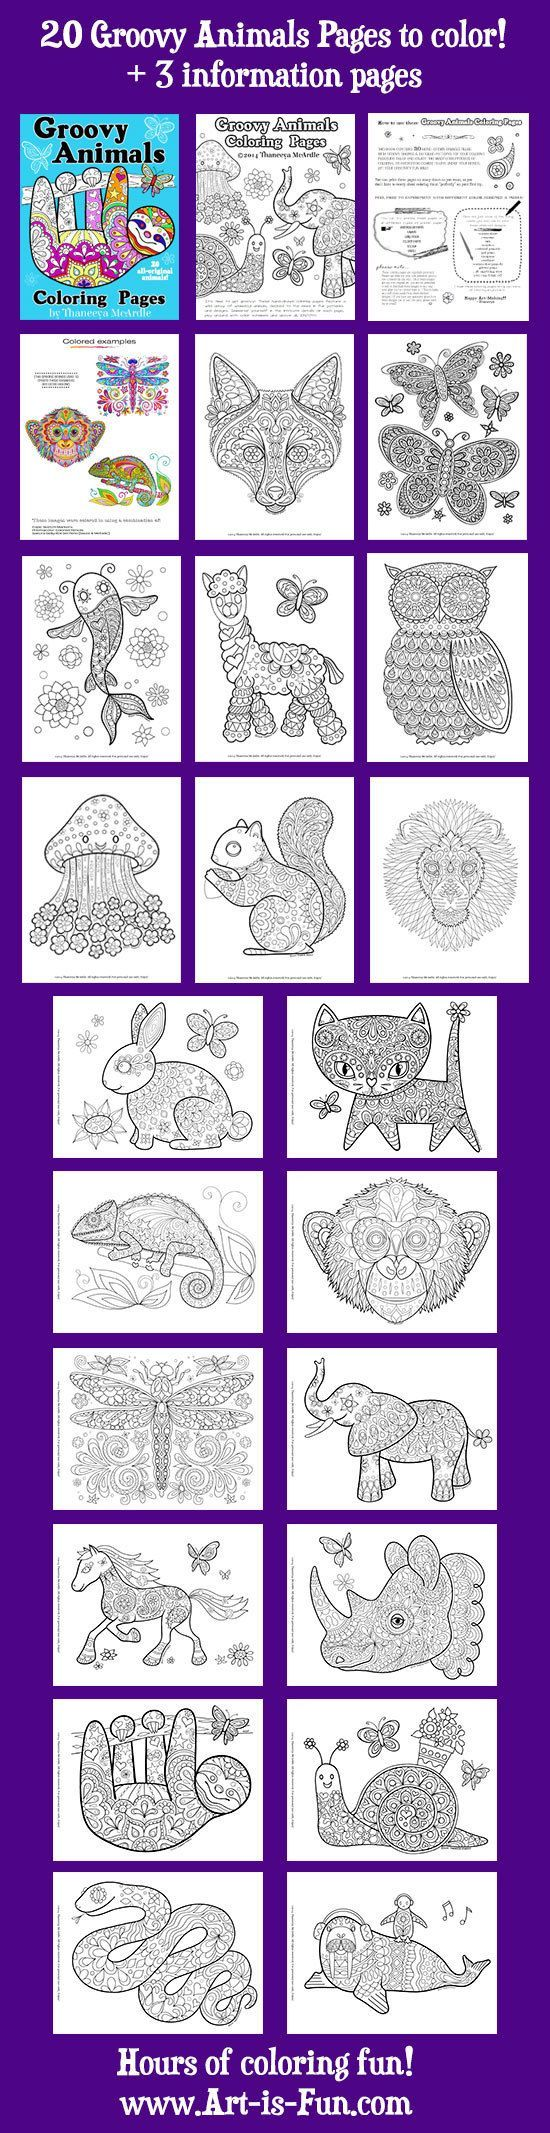 groovy animals coloring pages pdf 20 printable animal by thaneeya coloring books for adults. Black Bedroom Furniture Sets. Home Design Ideas